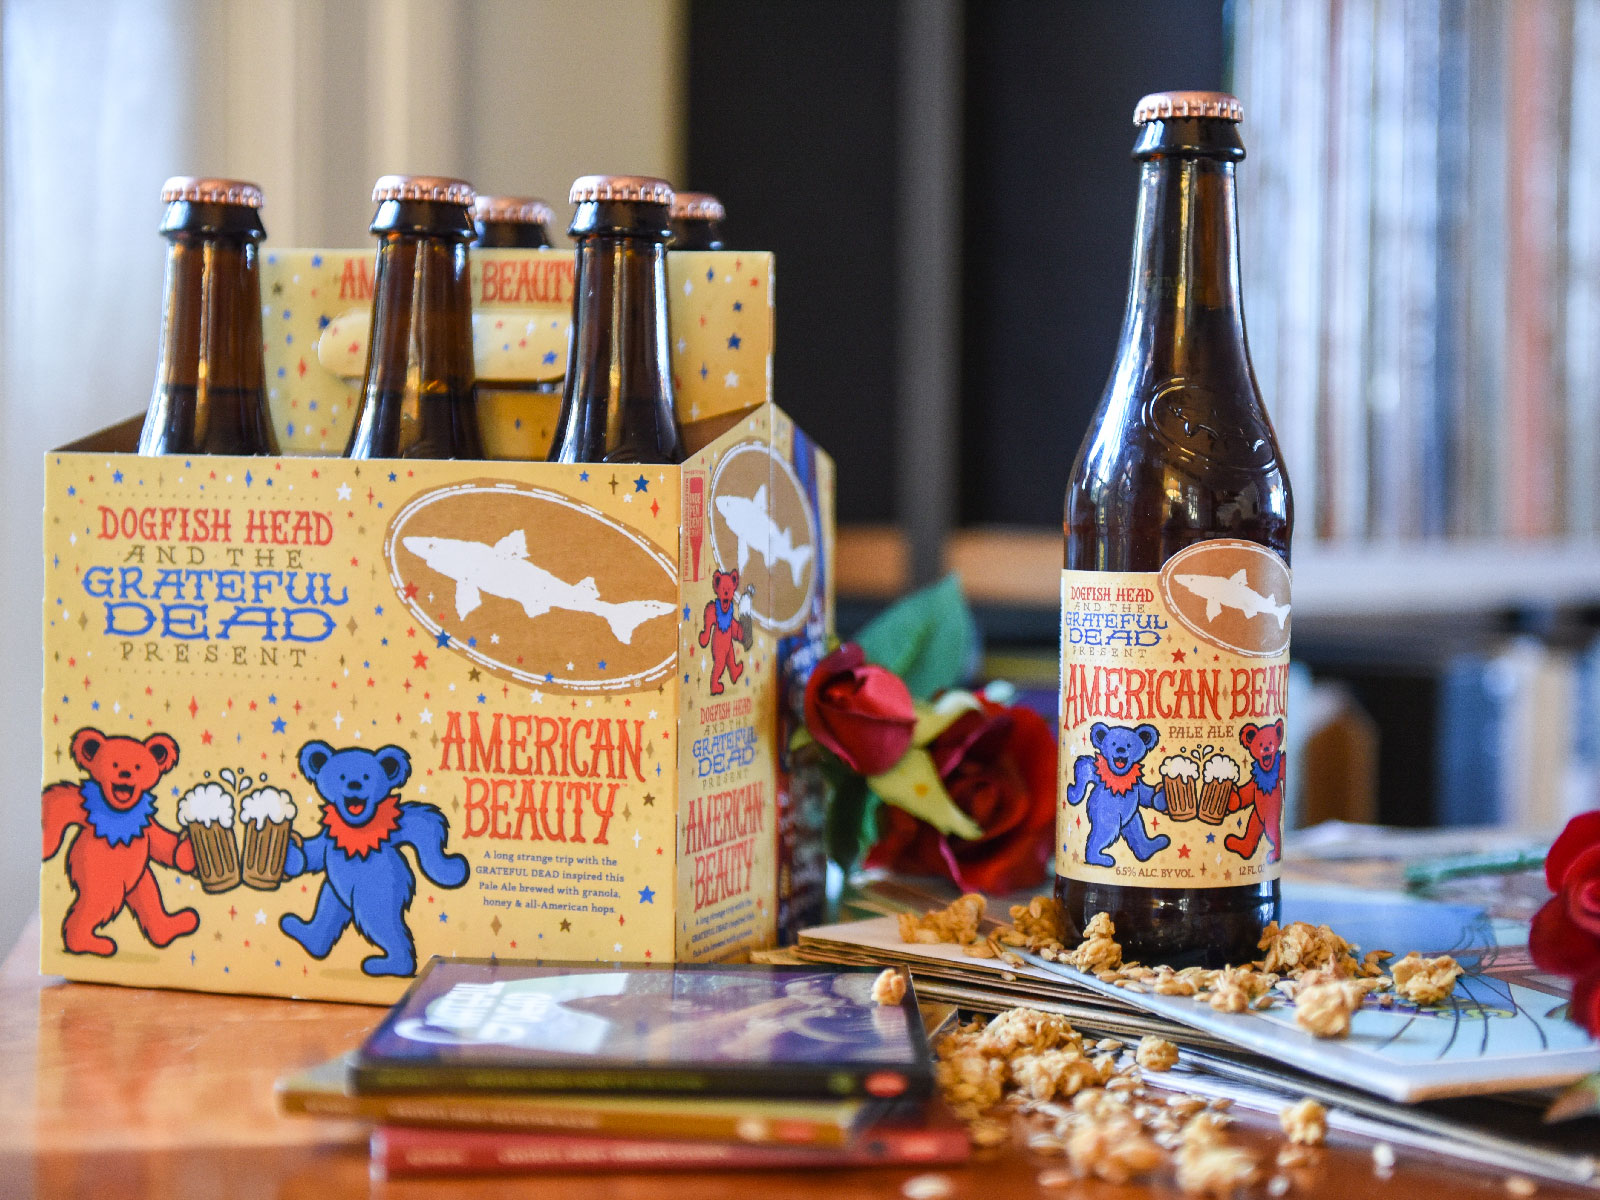 The Grateful Dead Are Returning — Or at Least Their Dogfish Head Beer Is